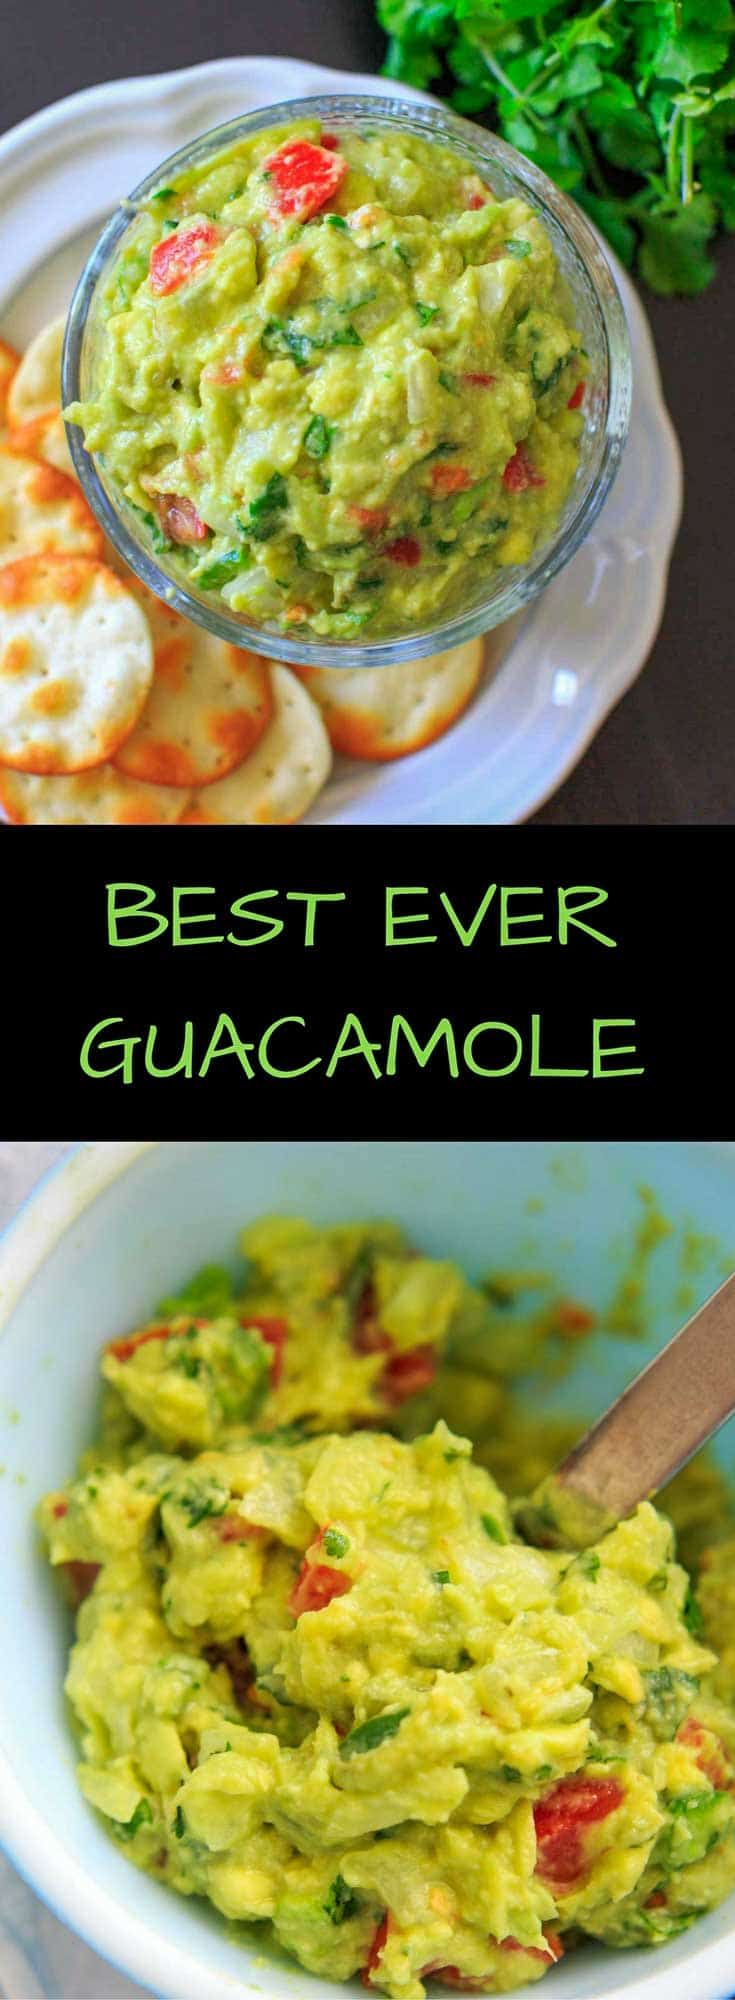 The BEST EVER guacamole recipe that's a little spicy, full of flavor and naturally vegan and gluten-free. Includes tips on how to make it your own if your taste buds can't handle cilantro or spicy.